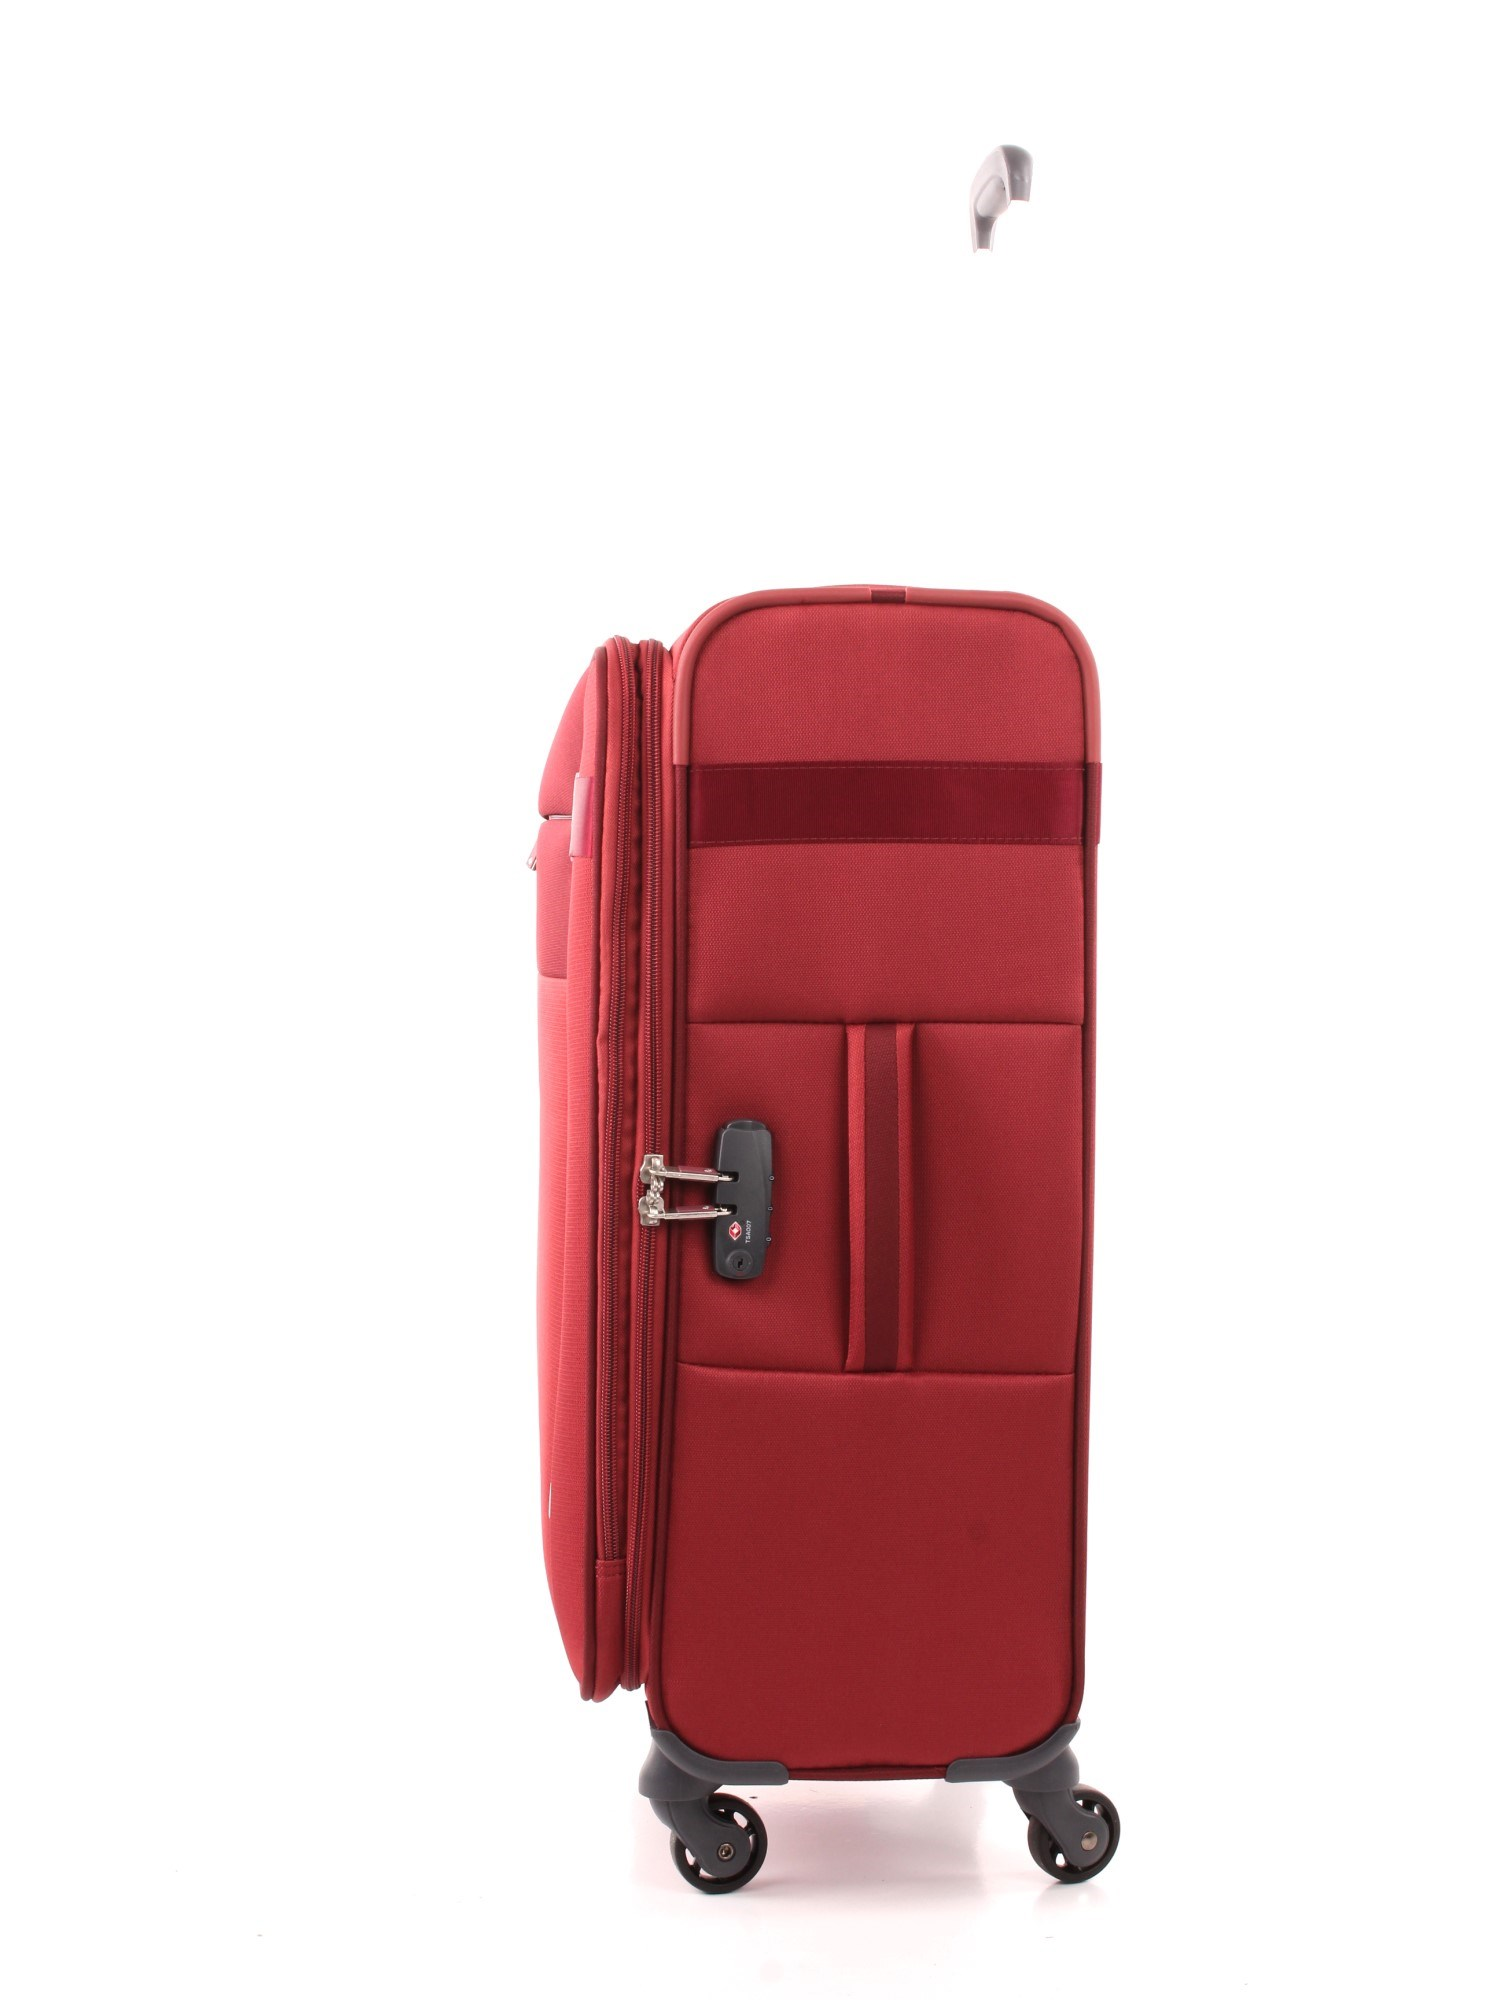 Samsonite Luggage suitcases Medium Baggage BORDEAUX KA7010004